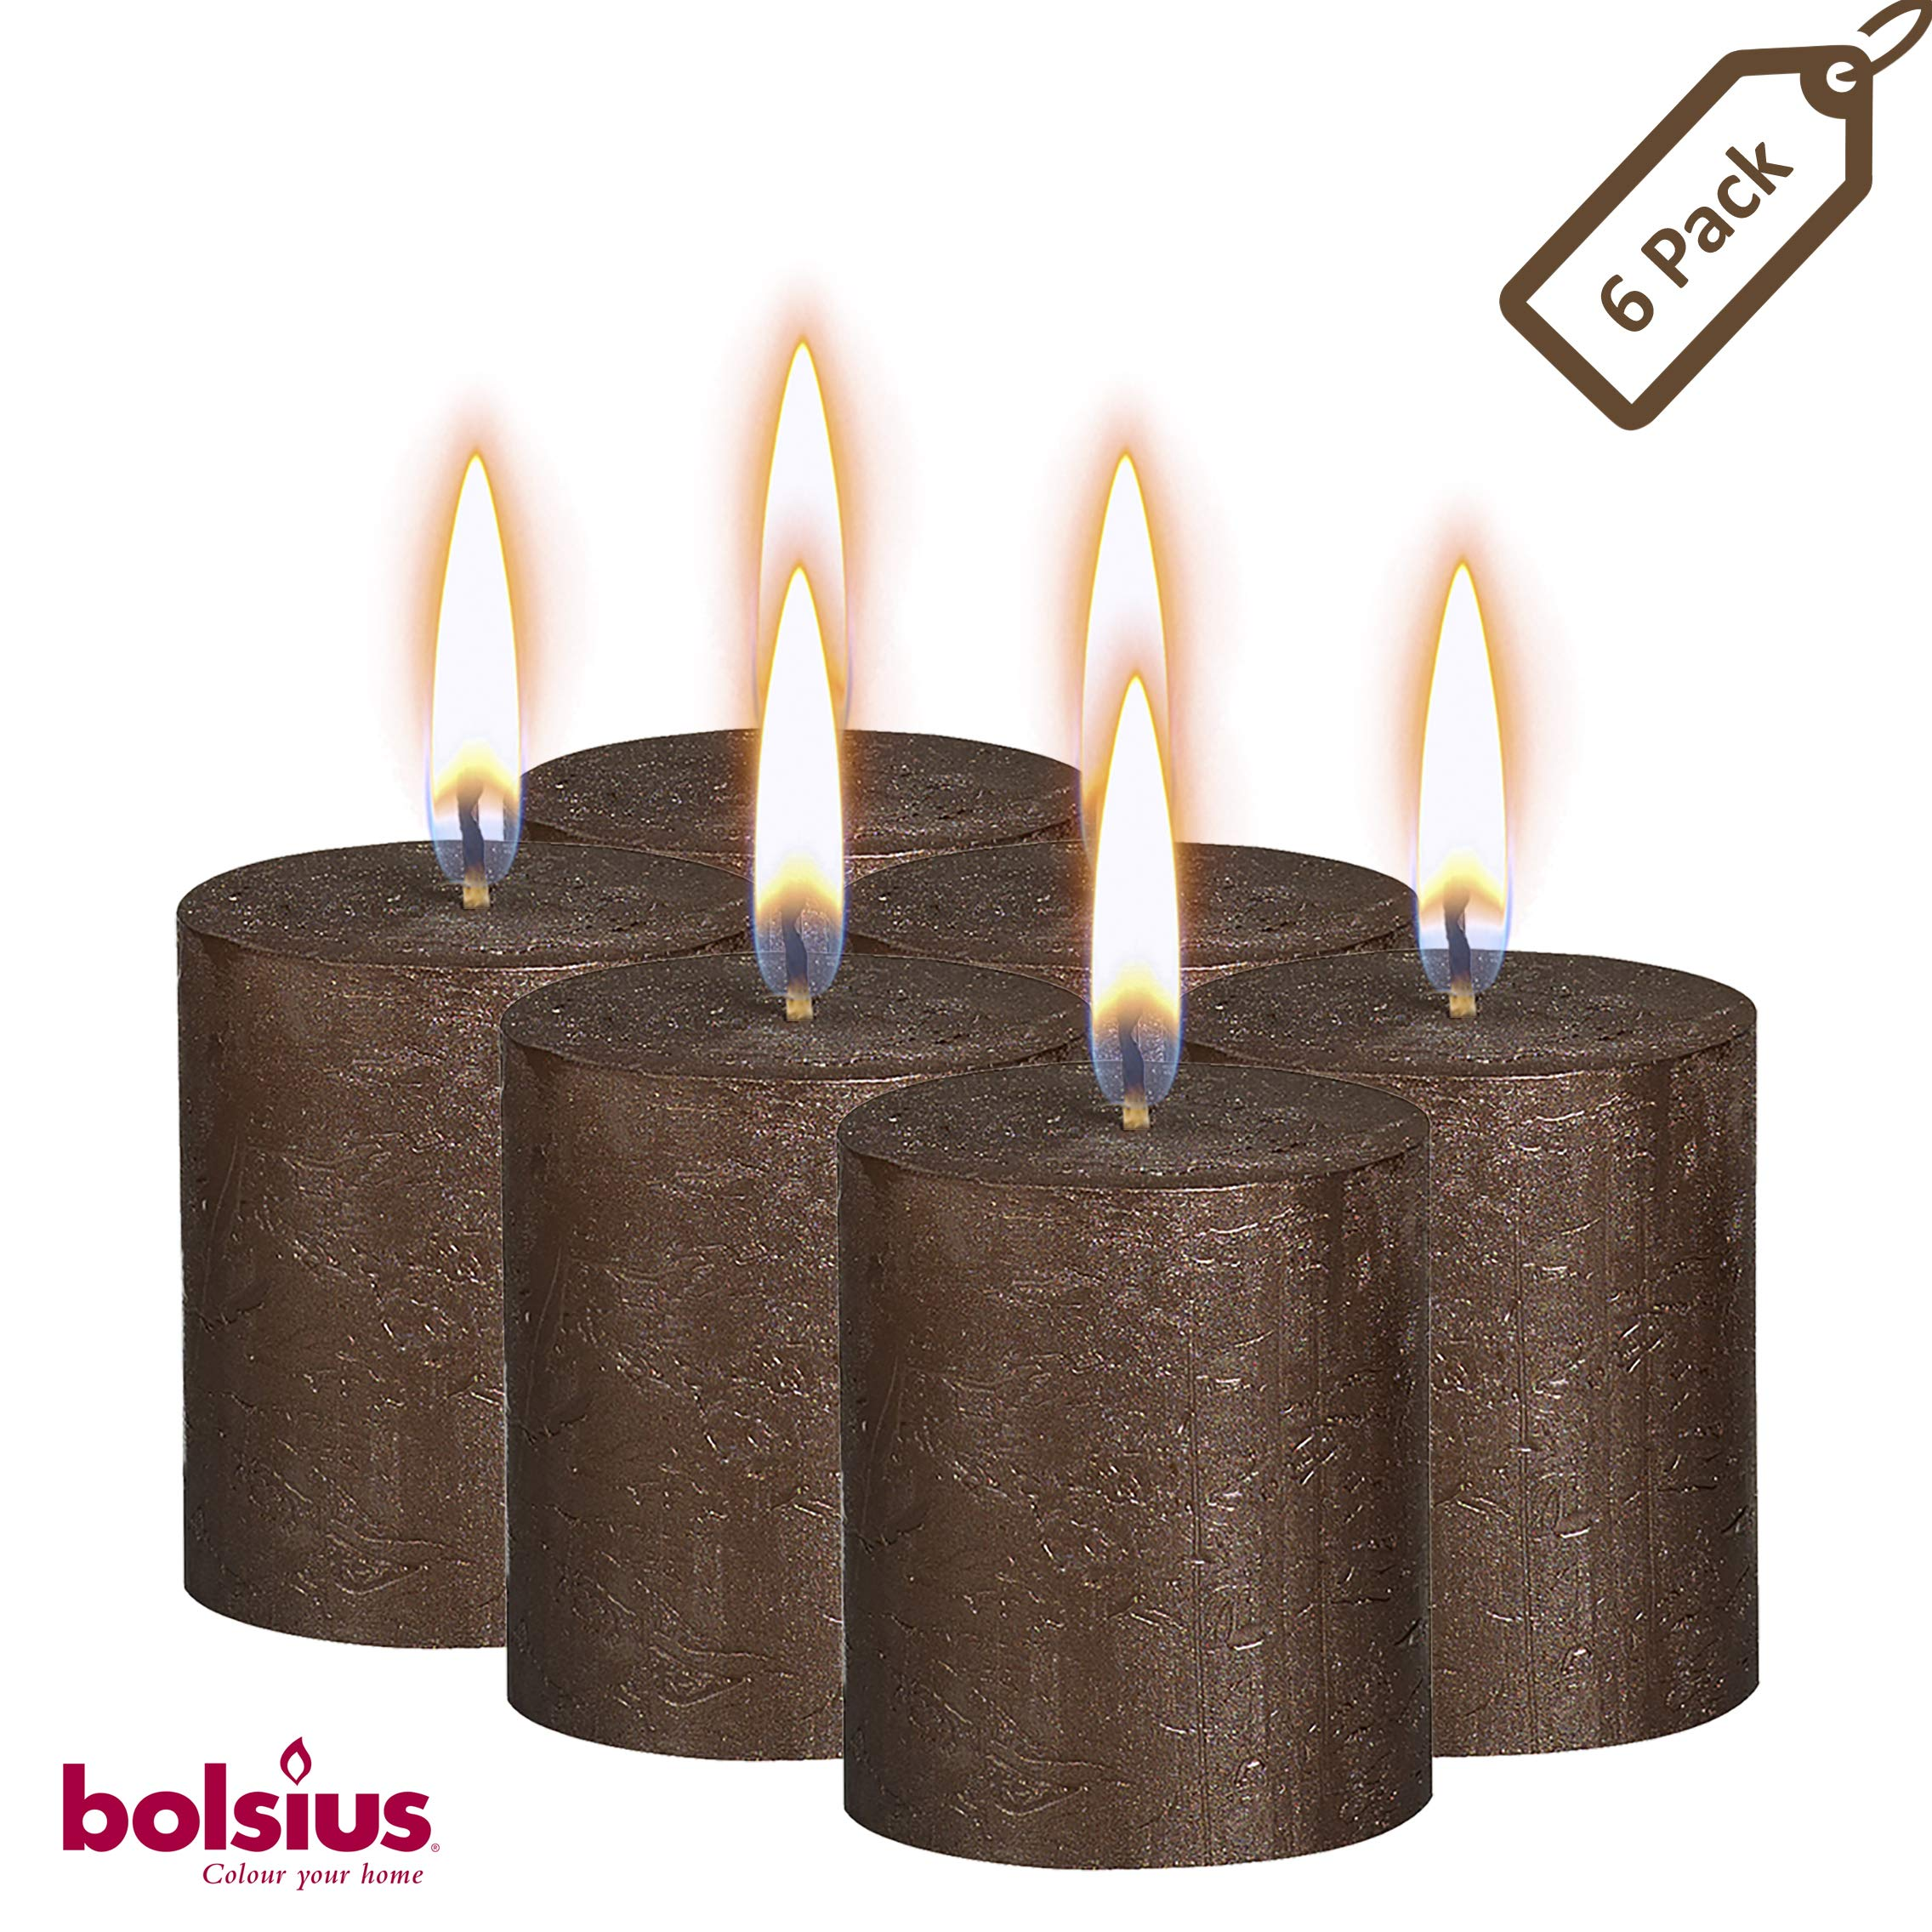 BOLSIUS Rustic Full Metallic Brown Copper Candles - Set of 6 Unscented Pillar Candles - Brown Copper Candles with a Full Metallic Coat - Slow Burning - Perfect Décor Candle - 80/68m 3.25X 2.75 Inches